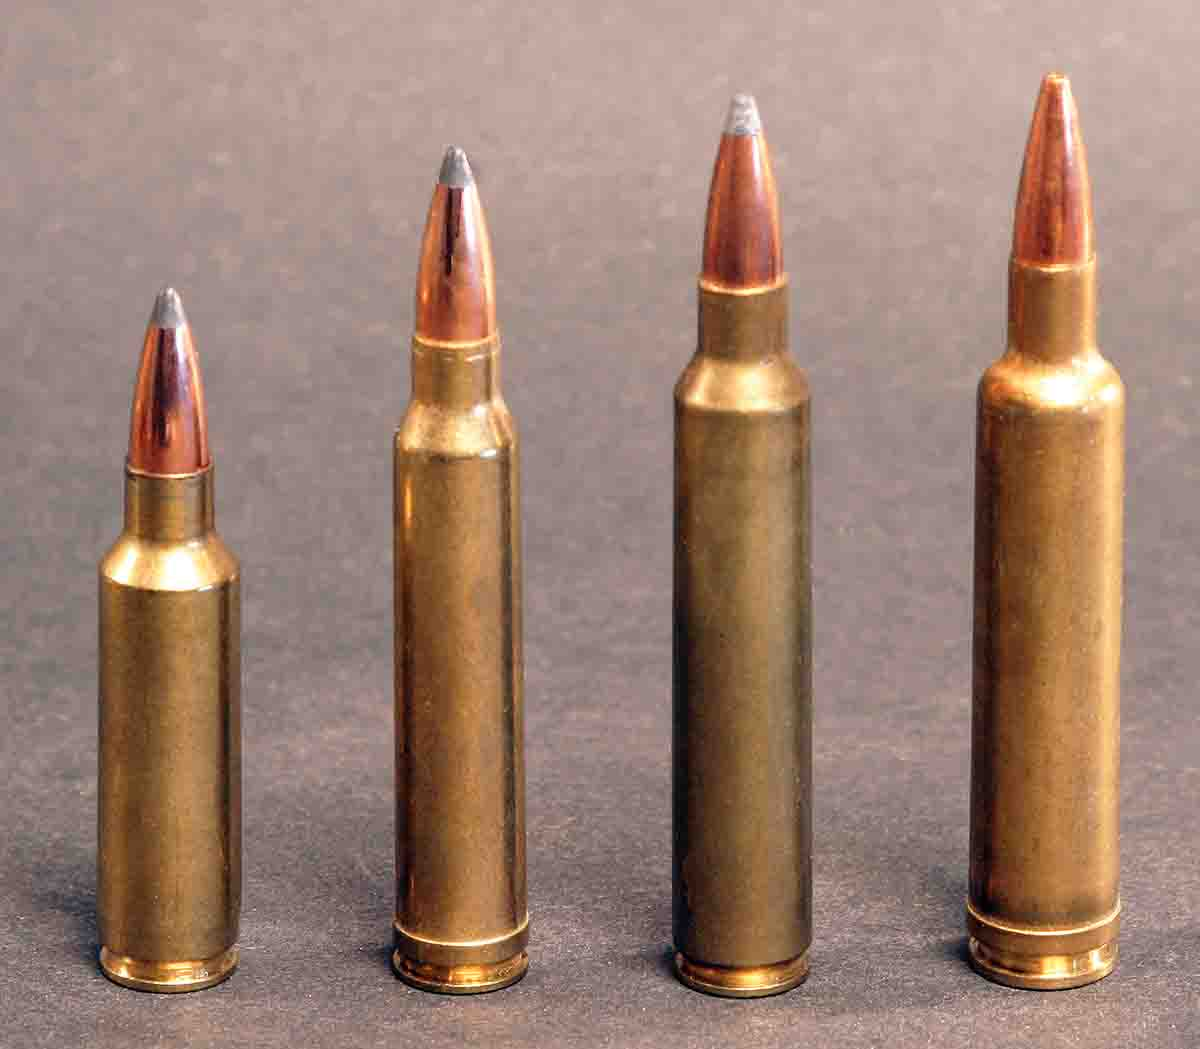 Thirty-caliber cartridges have often been crowded into bolt-action magazines, one reason some .30-caliber spitzers have relatively blunt ogives. They don't have to be seated as deeply, allowing more room for powder. This results in a little more muzzle velocity but reduces downrange velocity. Cartridges include (left to right): the .300 Winchester Short Magnum, .300 Winchester Magnum, .300 Remington Ultra Mag and the .30-378 Weatherby Magnum.